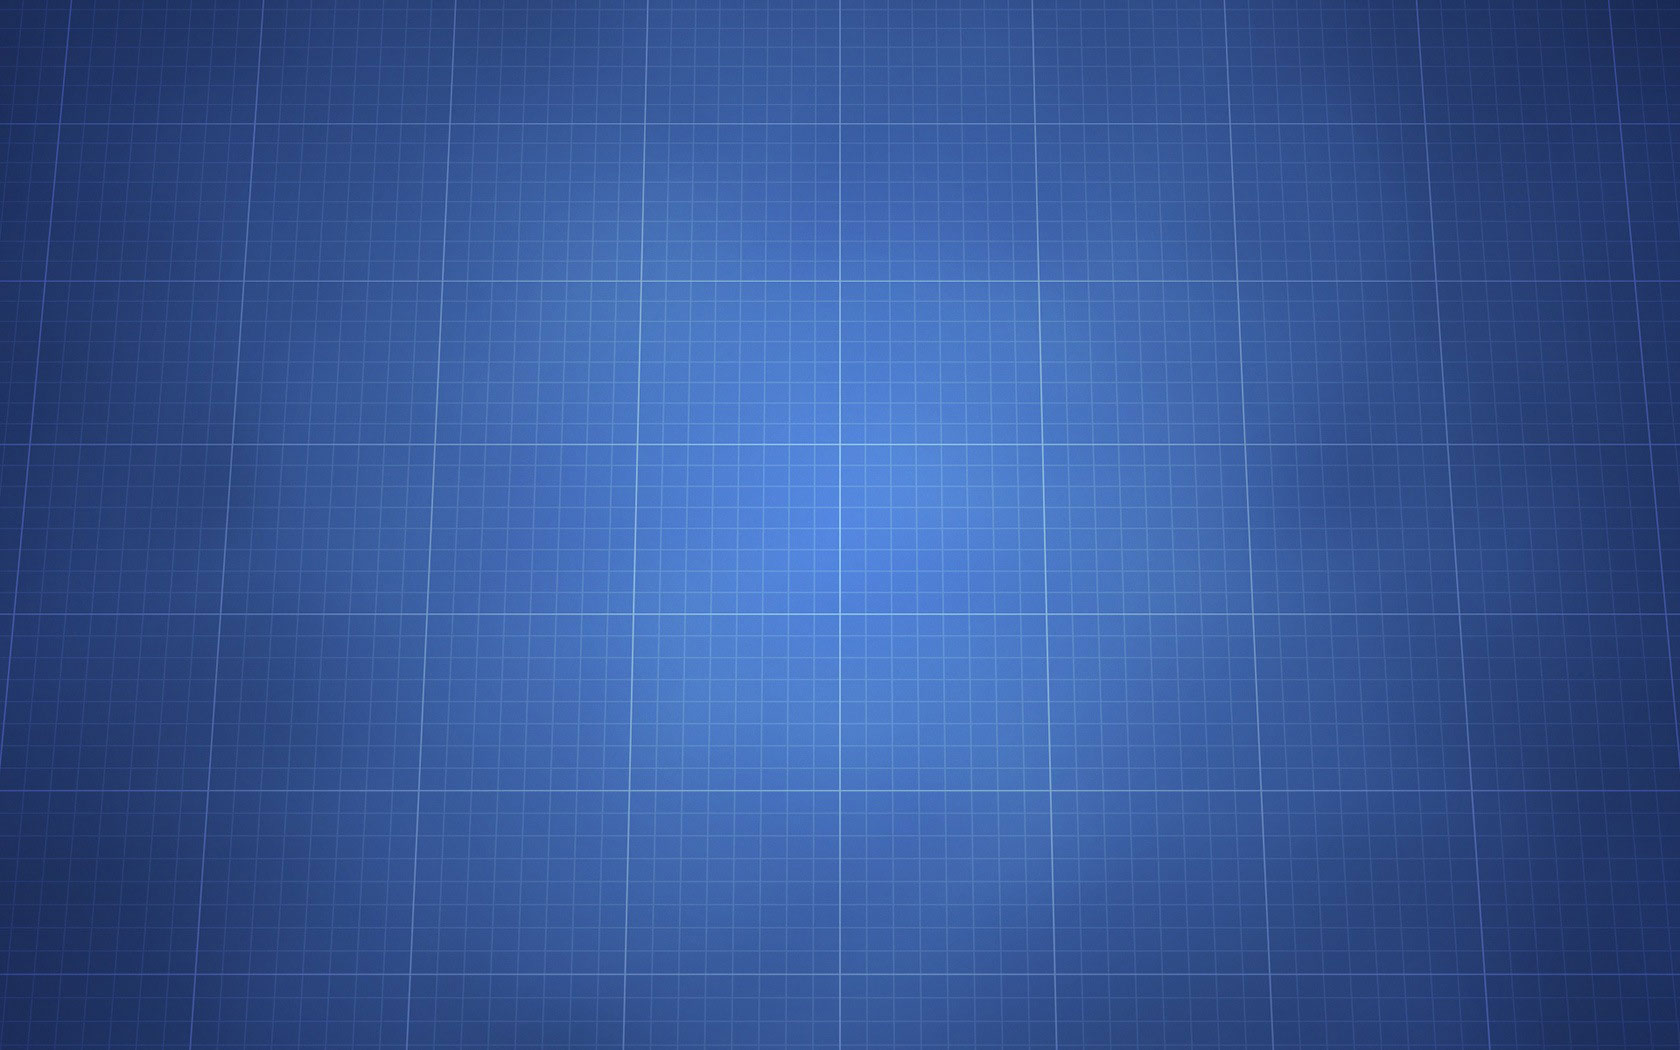 Blue computer background sf wallpaper collection of blue computer background on hdwallpapers malvernweather Choice Image